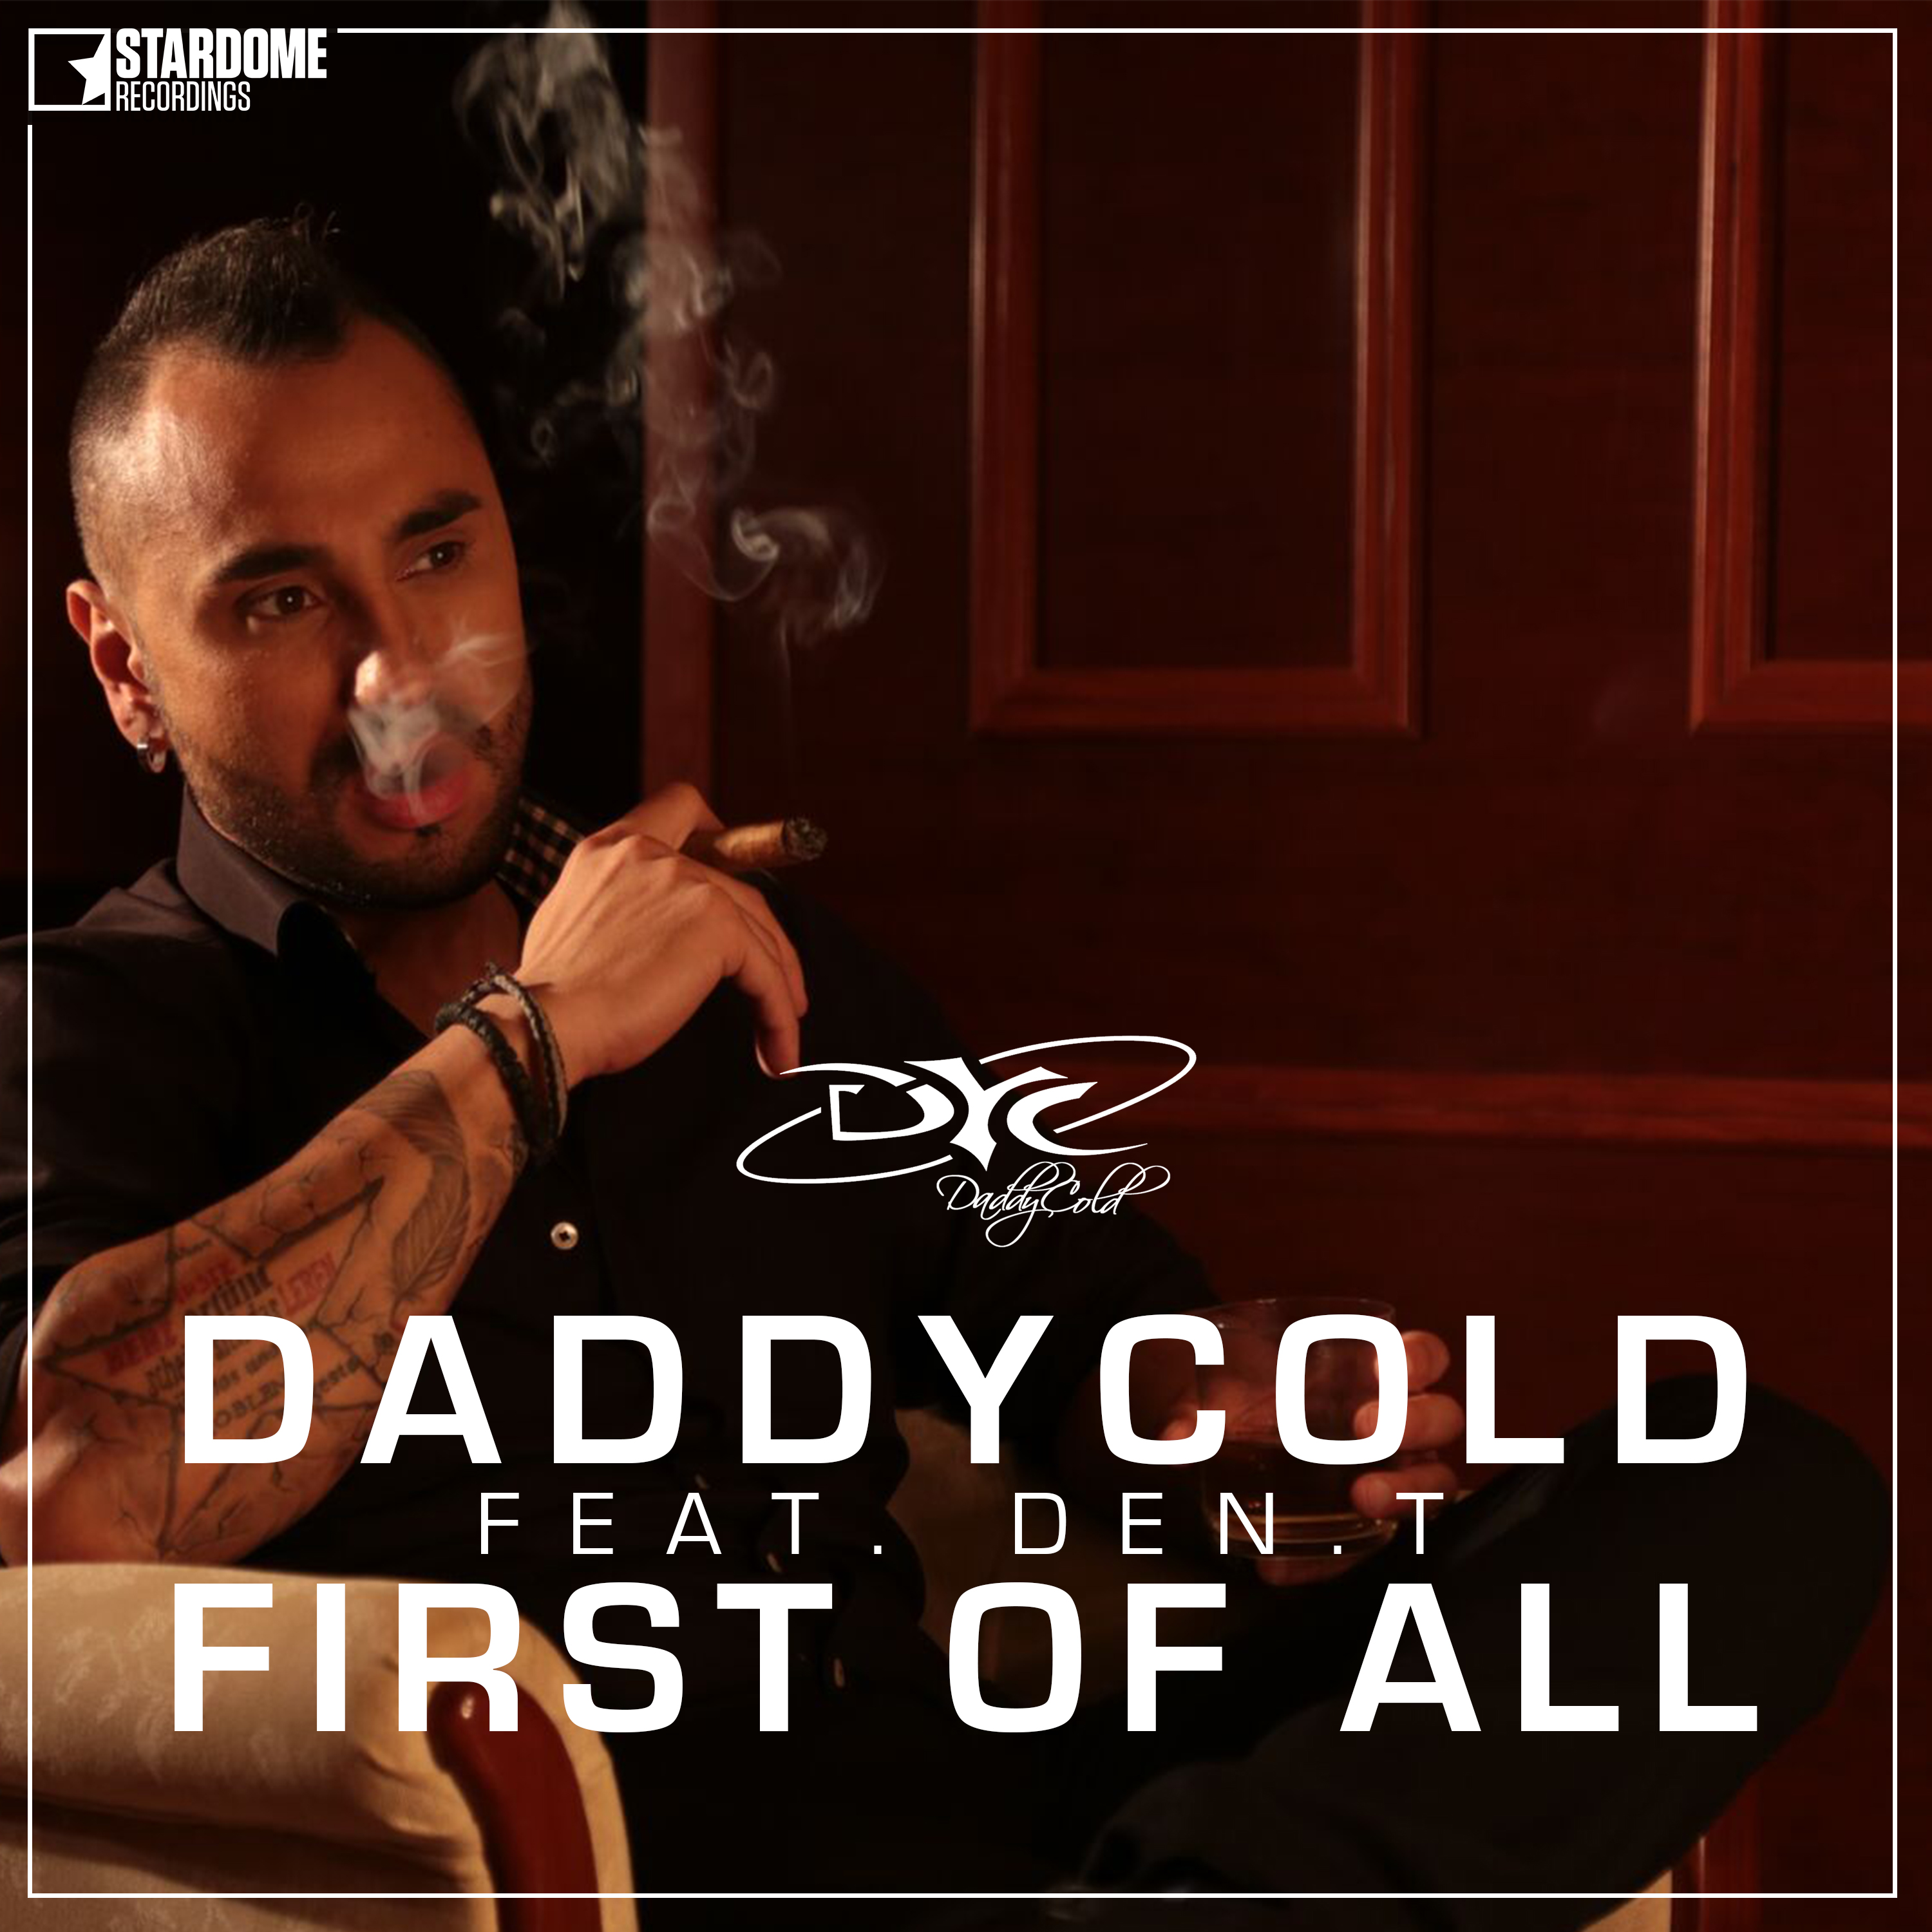 DADDYCOLD FEAT. DEN.T-First Of All